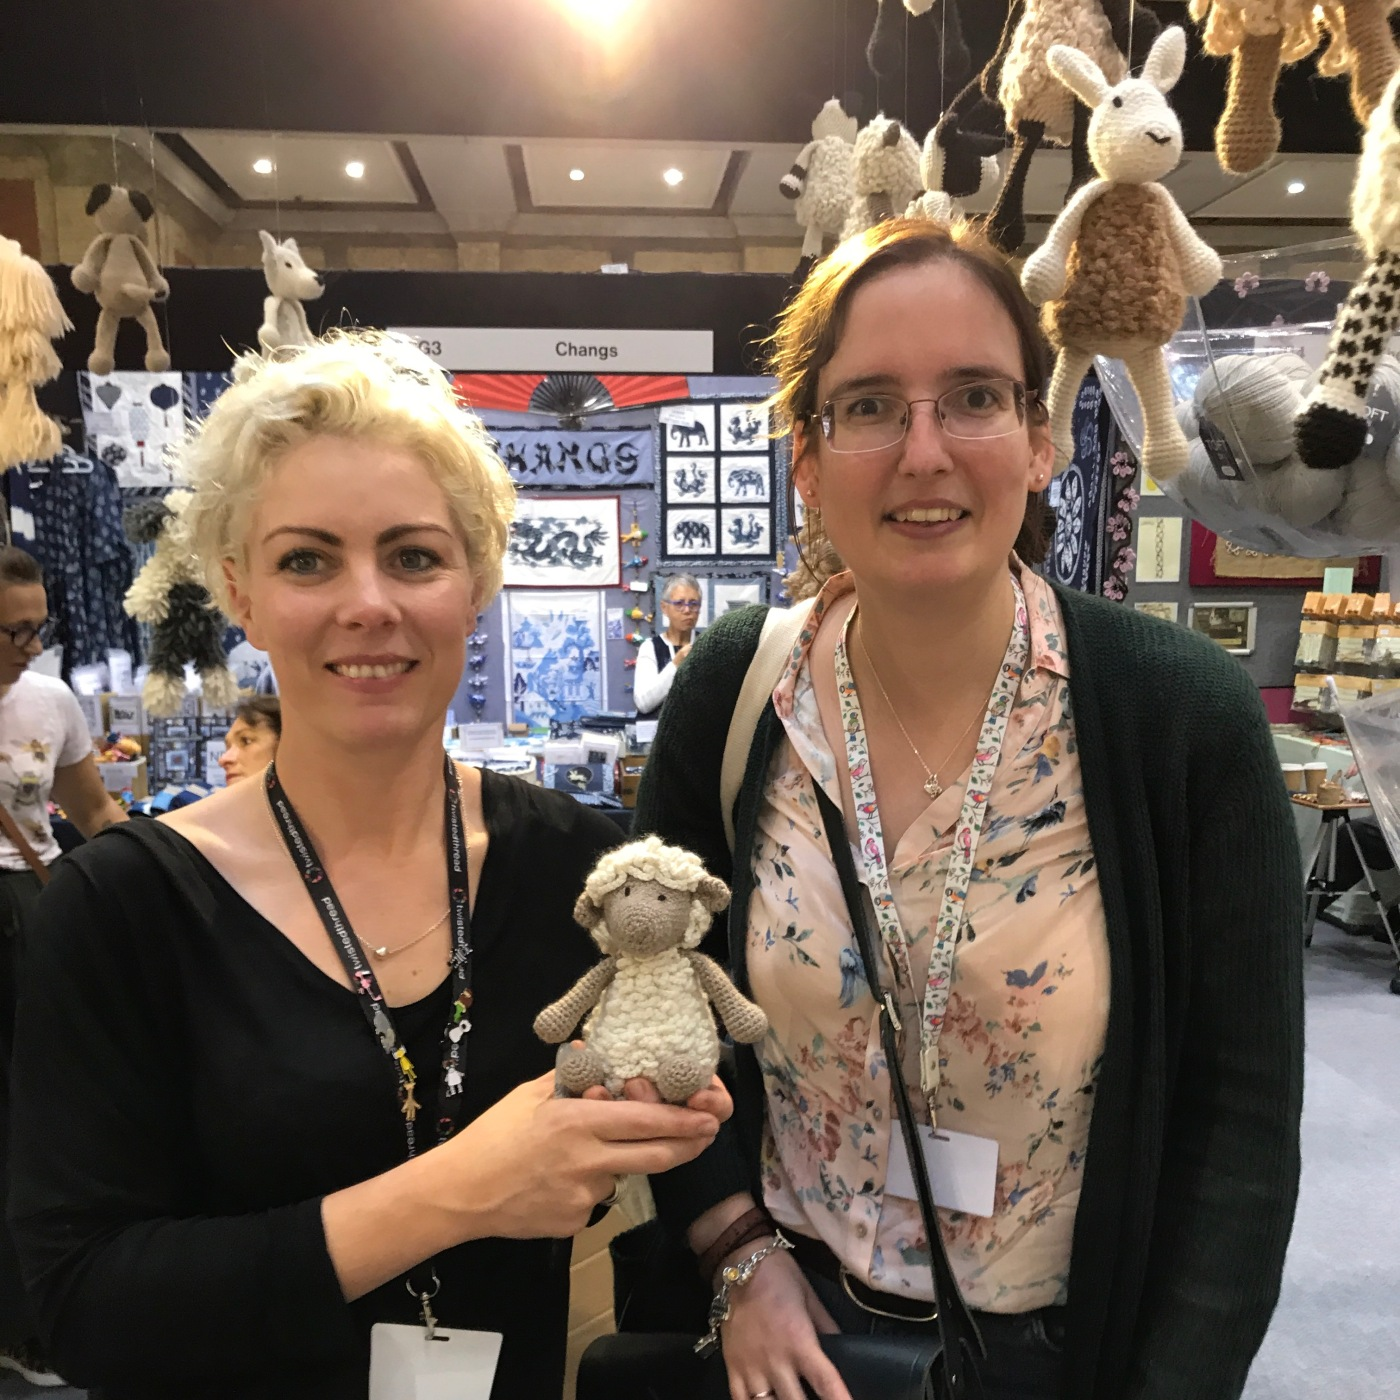 Knitting And Stitching Show 2017 October : Knitting & Stitching Show   The Stitching sheep